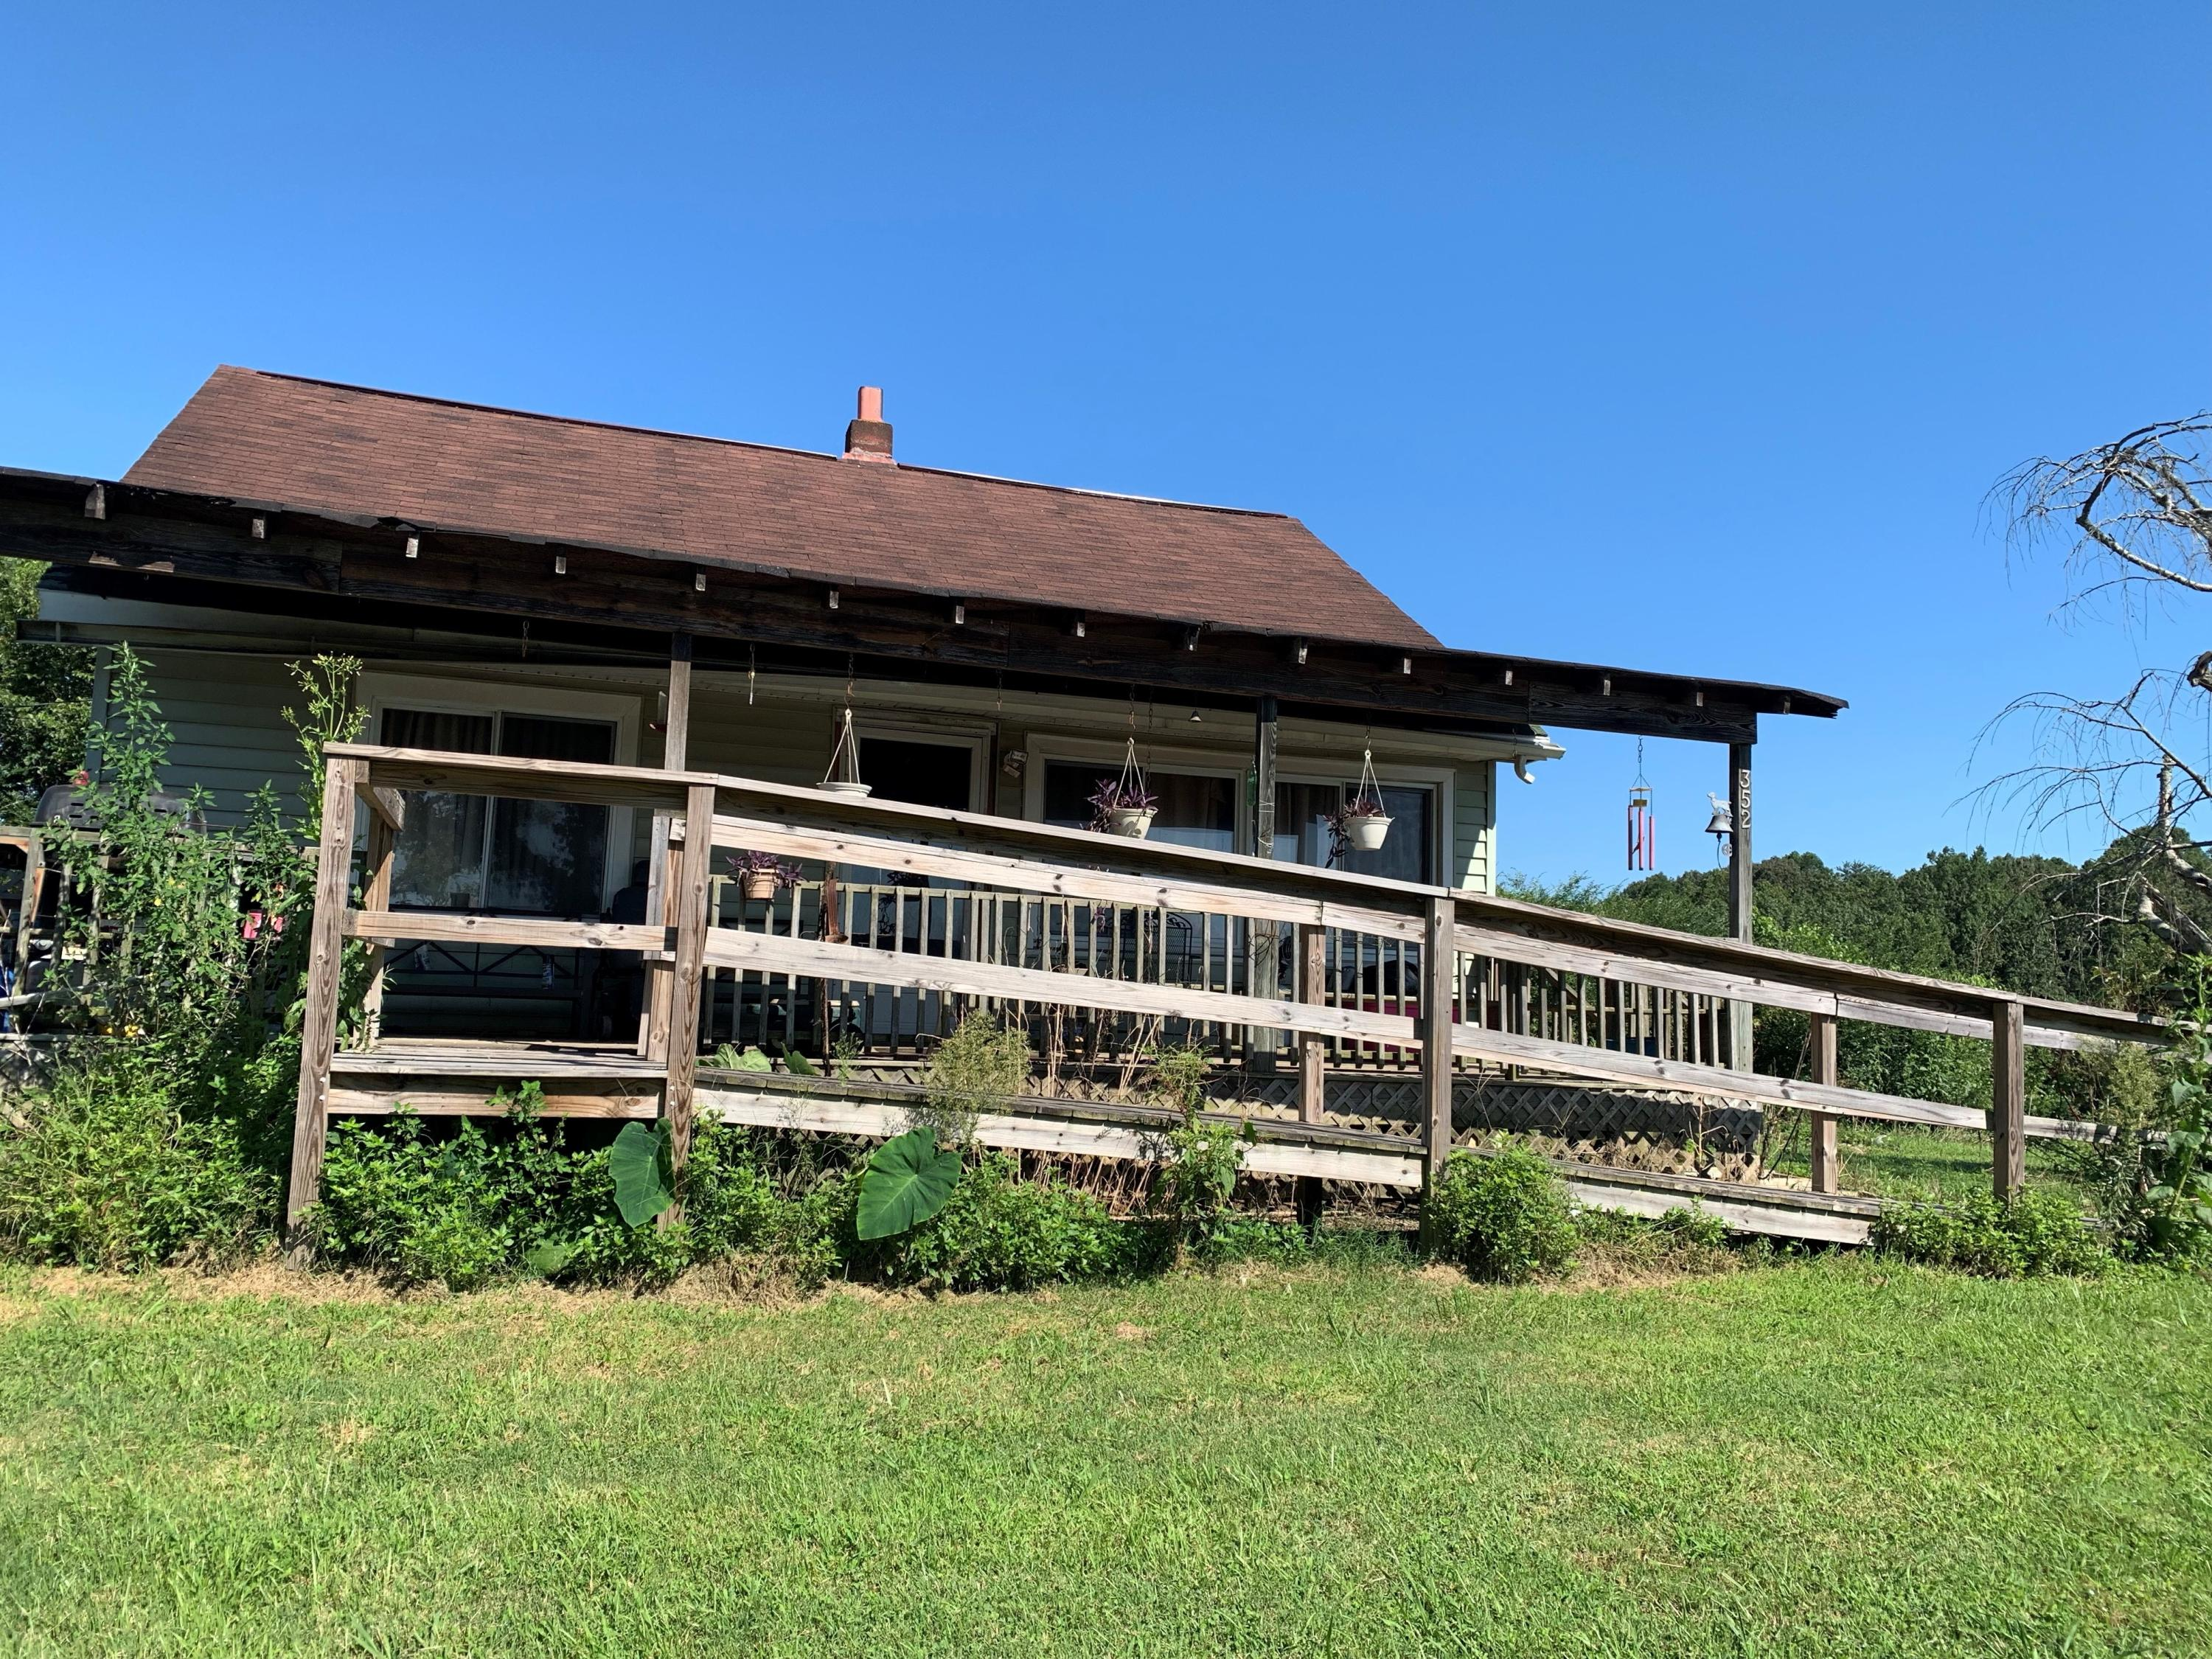 20190830194124385134000000-o Clinton anderson county homes for sale